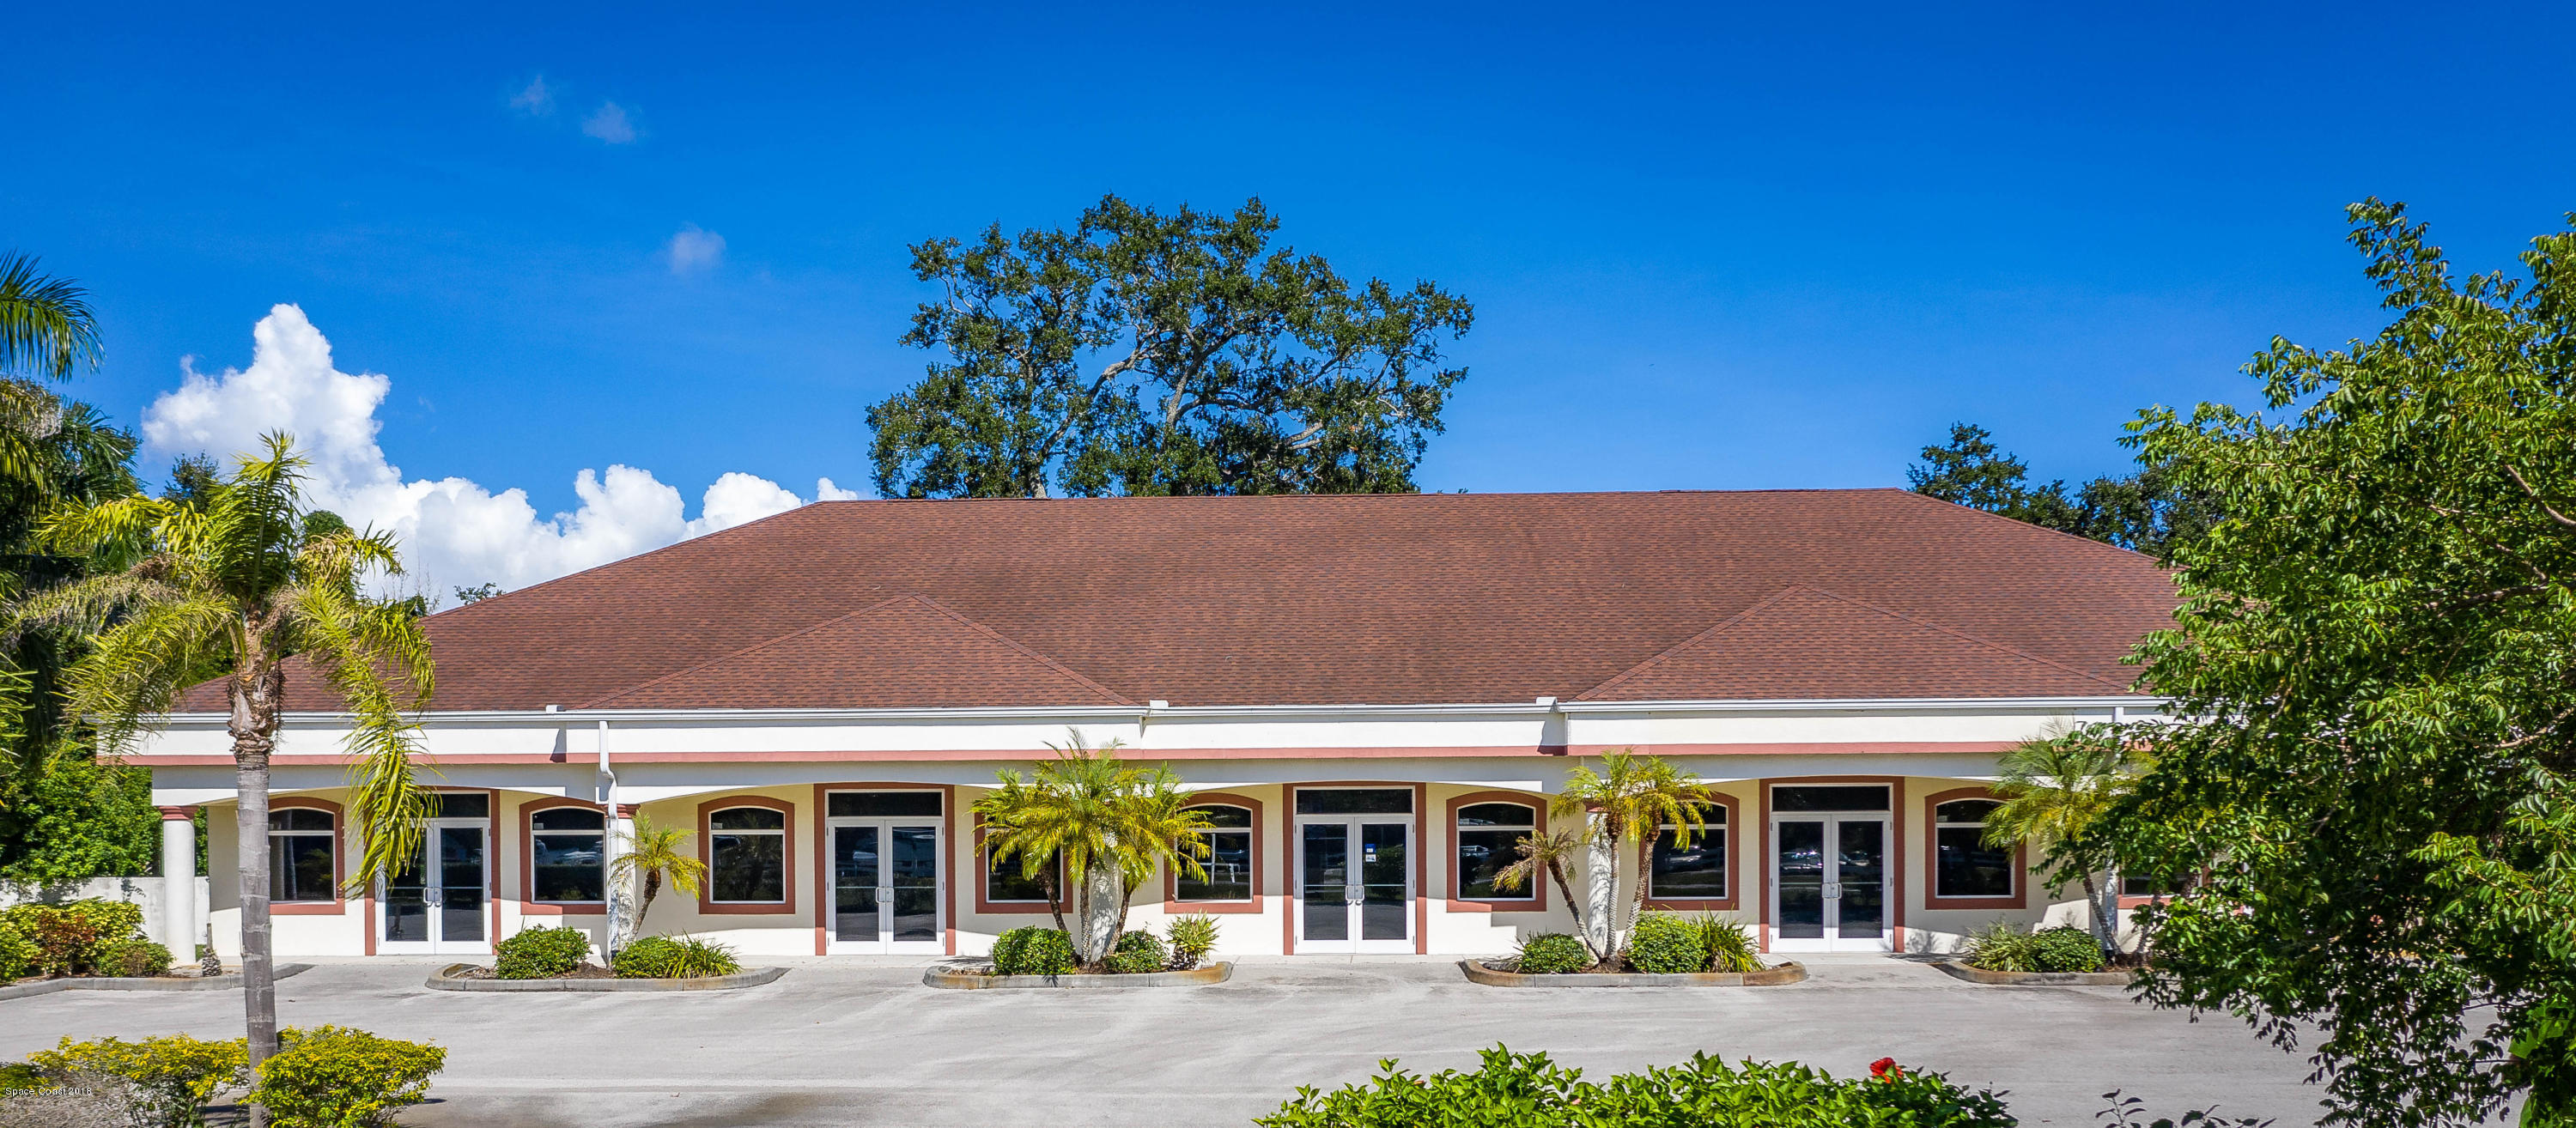 Commercial for Sale at 2060 Rockledge Boulevard 2060 Rockledge Boulevard Rockledge, Florida 32955 United States